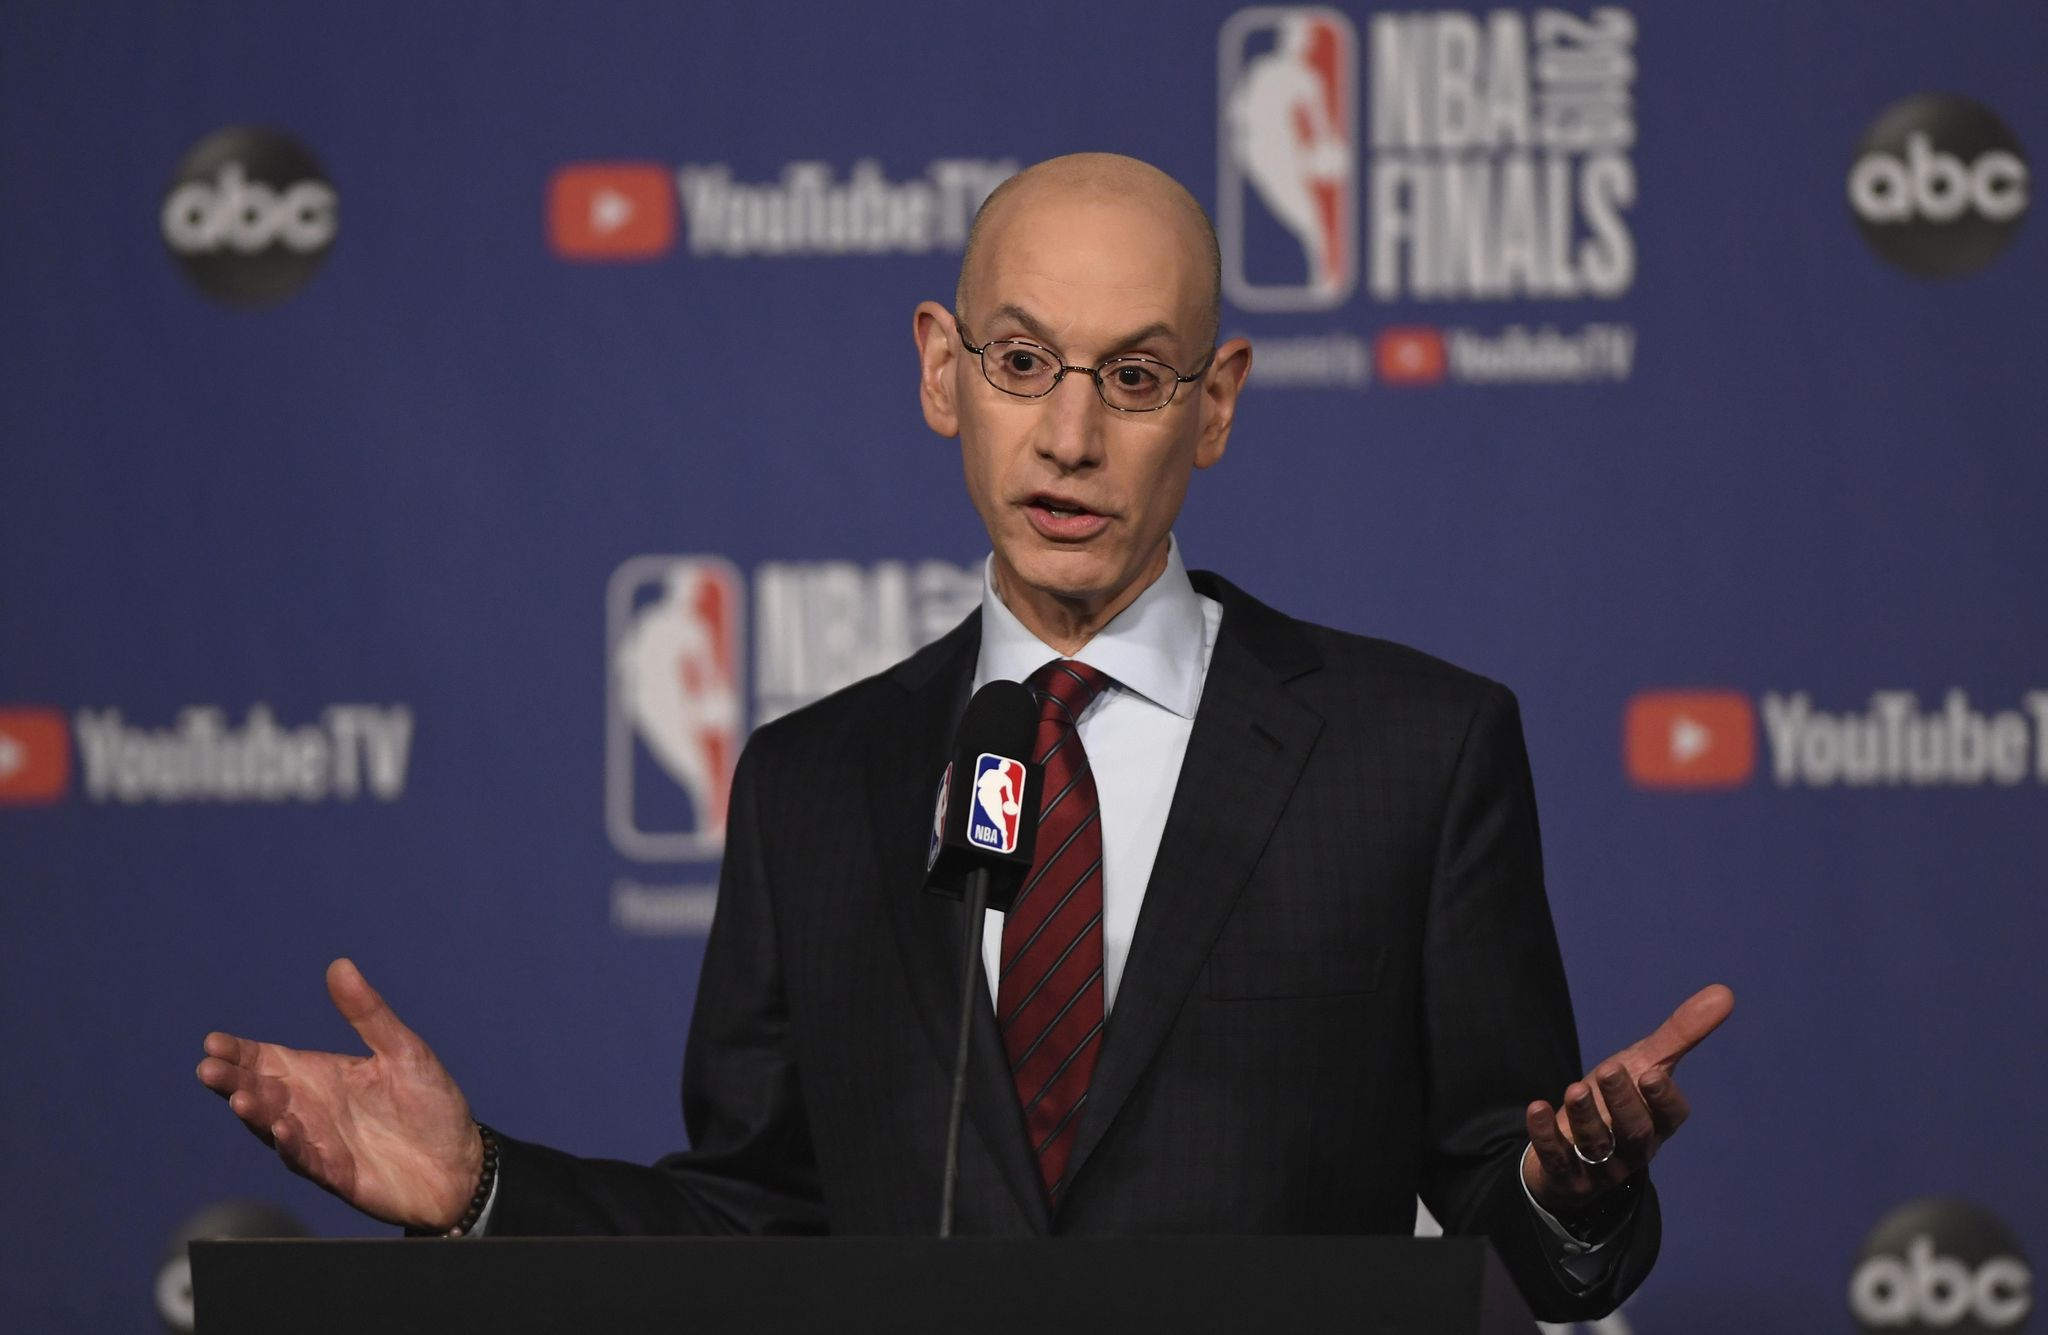 NBA done using term 'owner' over racial sensitivity concerns, commissioner says